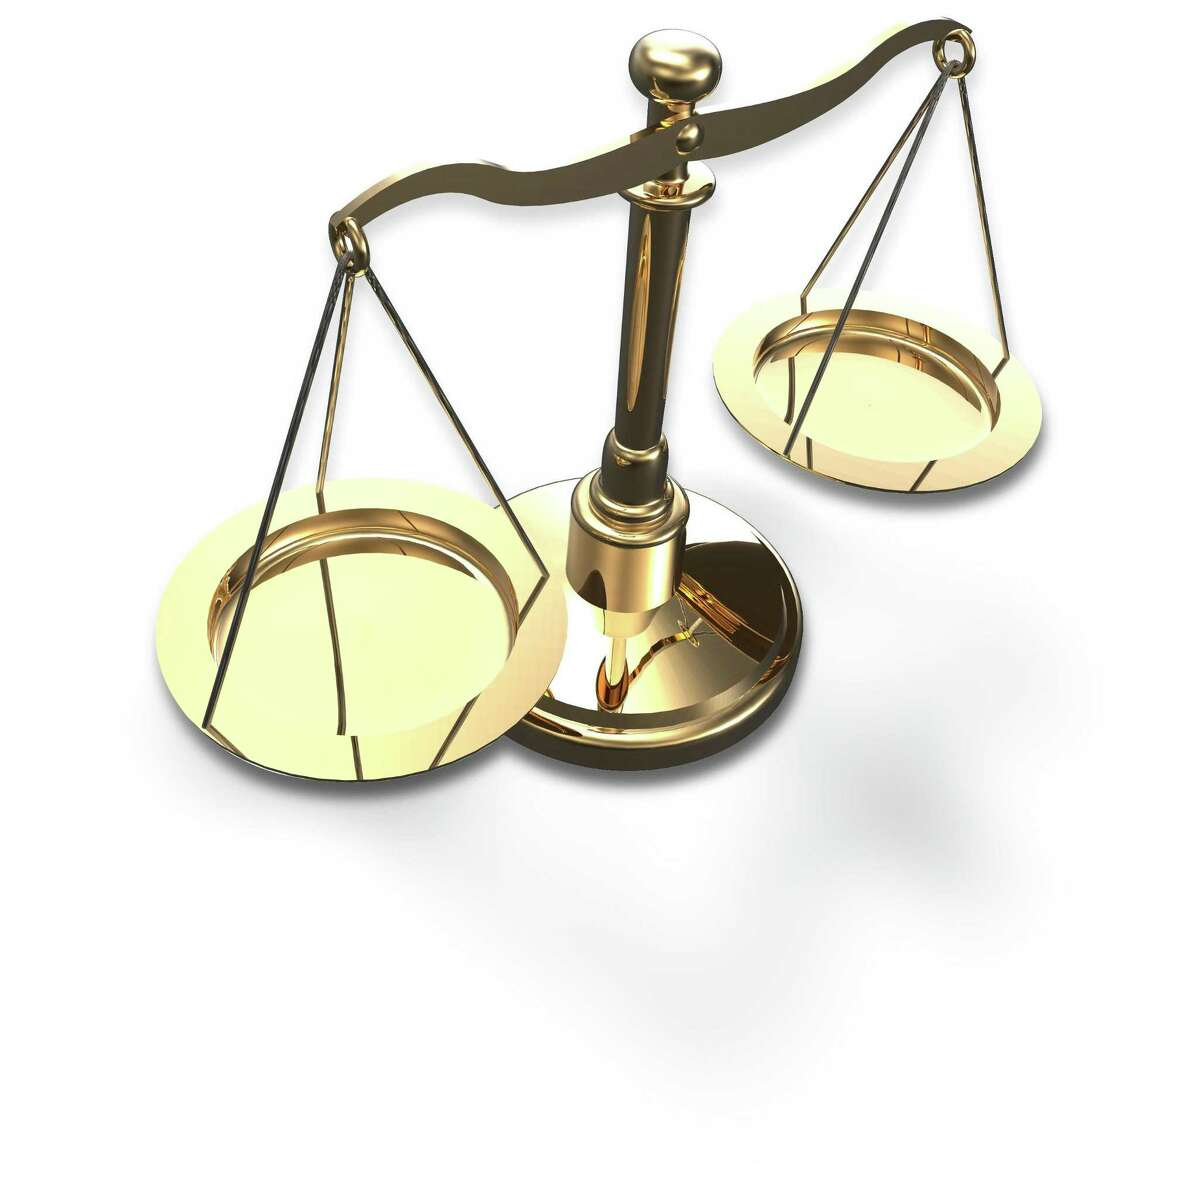 Scales as symbol of law justice court fairness choice 3D render with clipping path